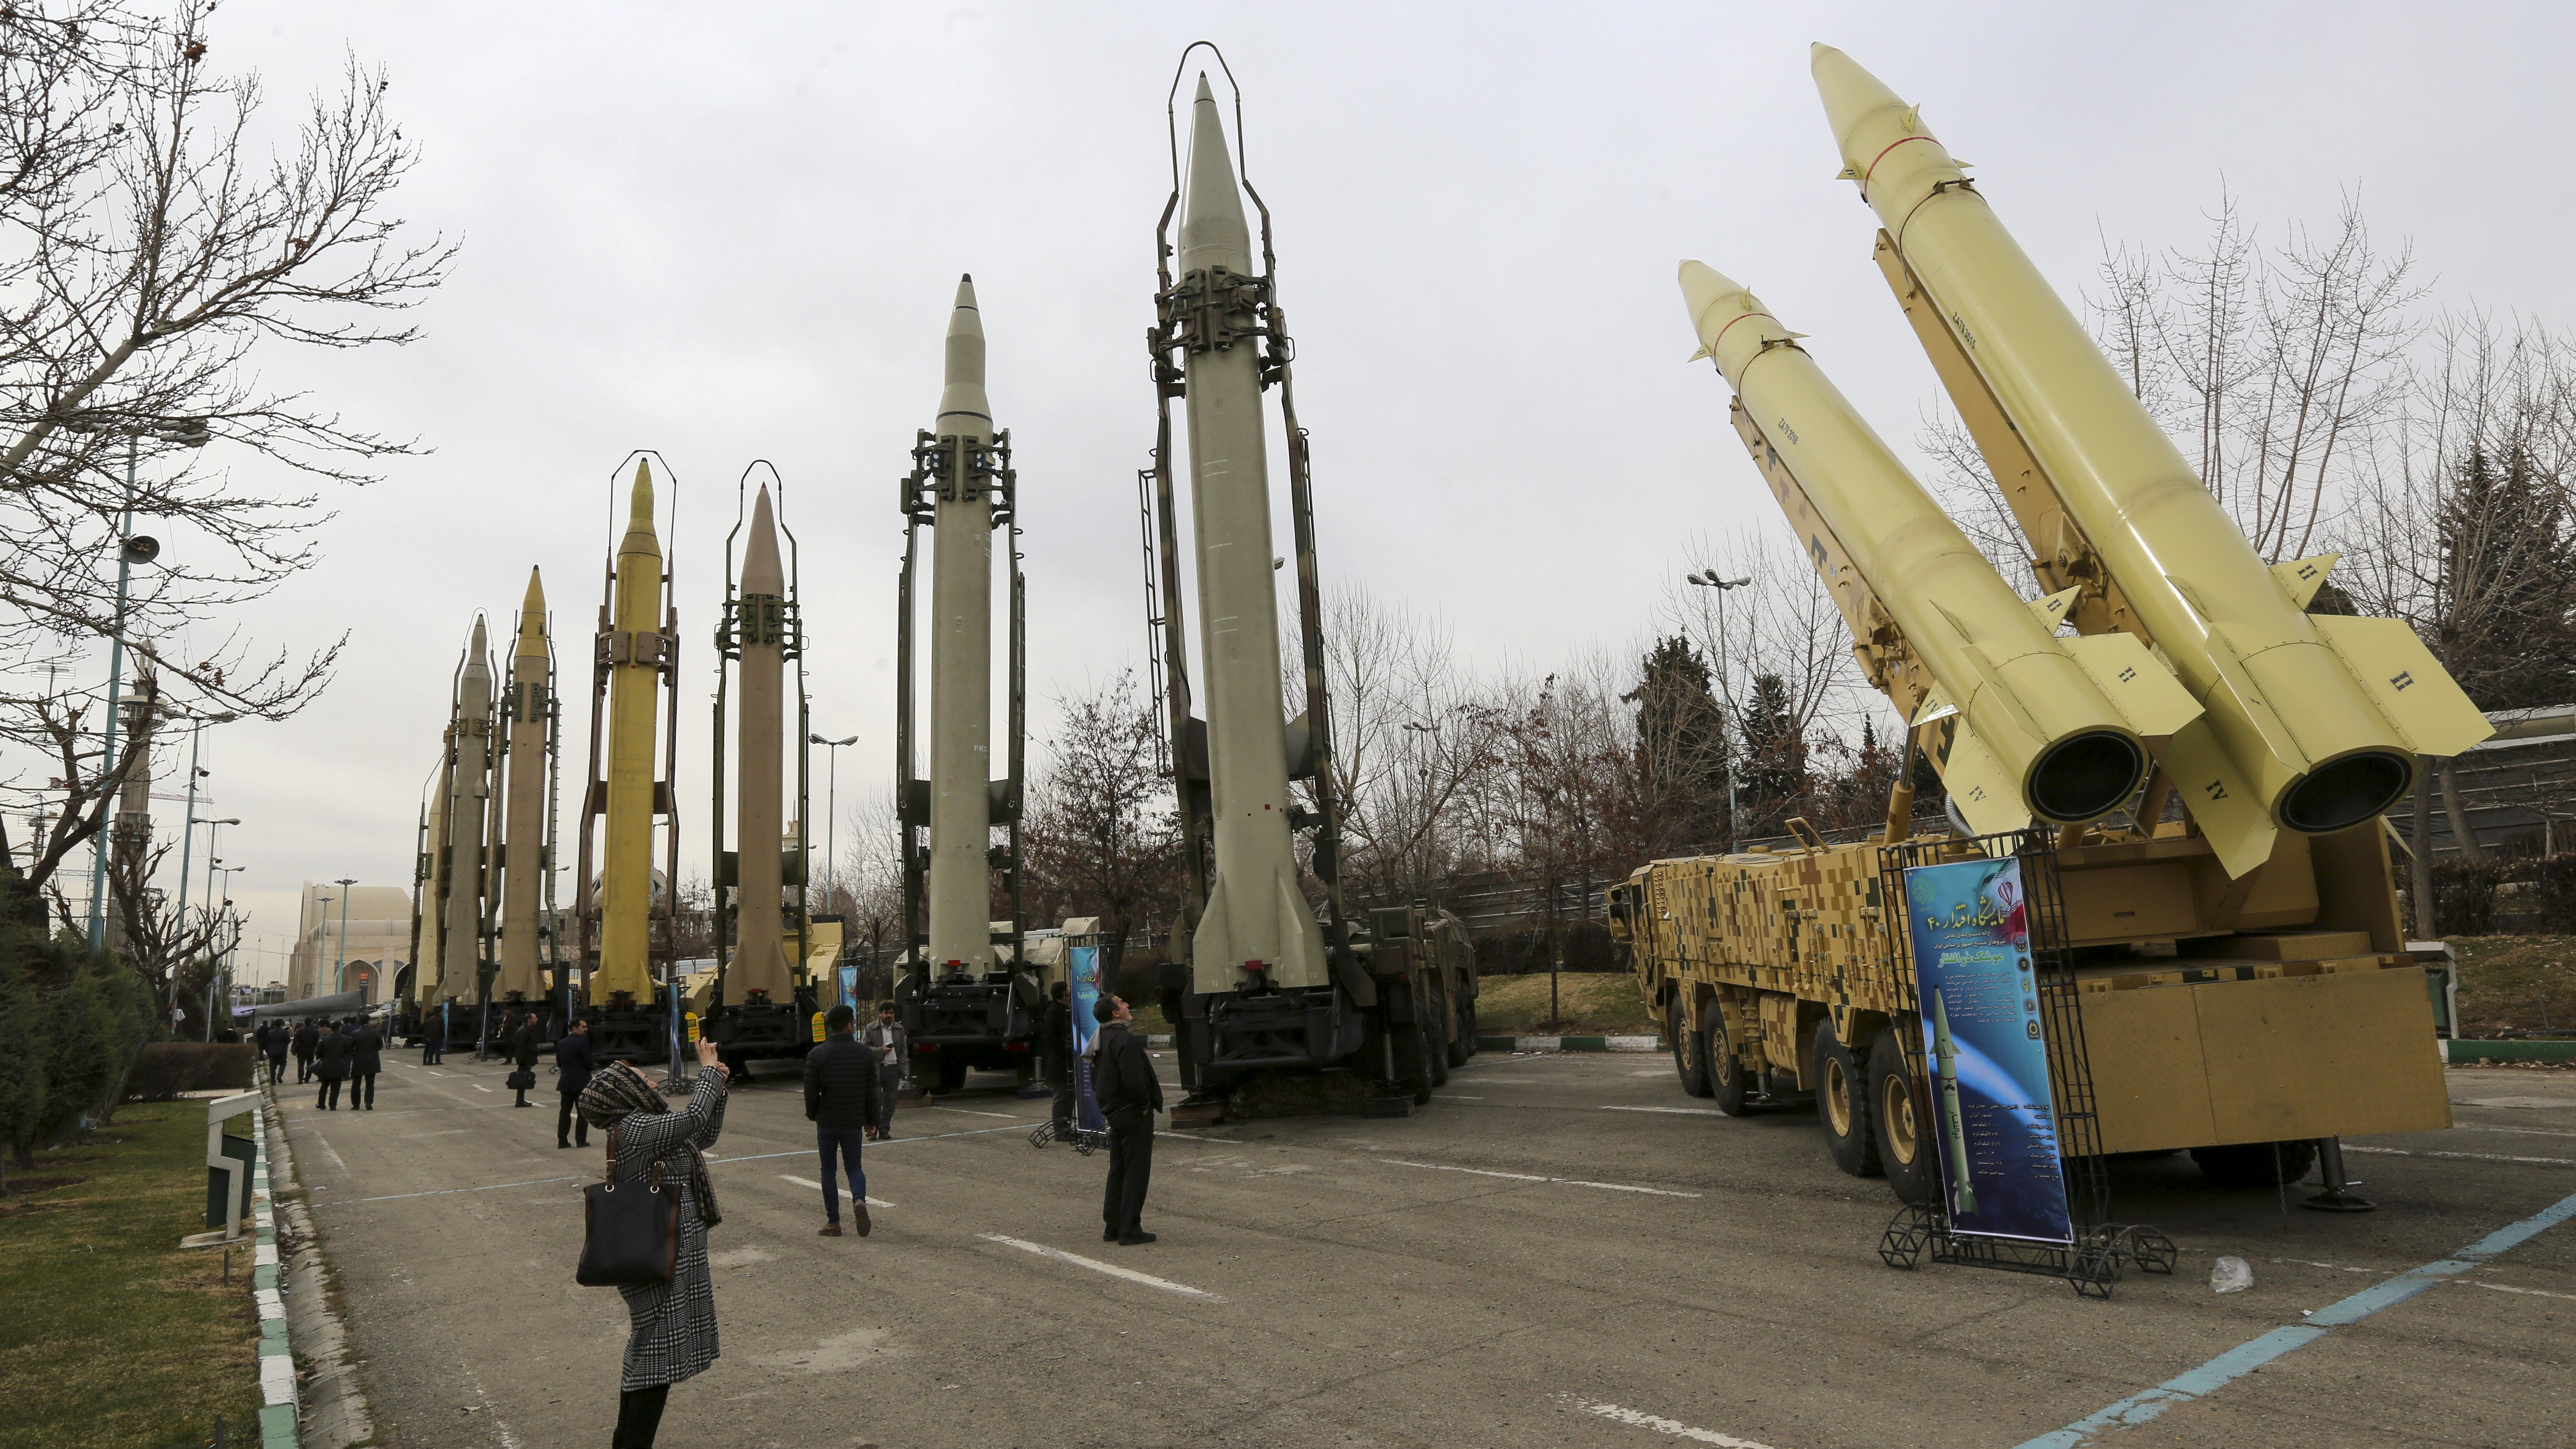 Iranians visit a weaponry and military equipment exhibition in the capital Tehran on February 2, 2019, organized on the occasion of the 40th anniversary of the Iranian revolution. - Iran announced the successful test of a new cruise missile with a range of over 1,350 kilometers on today, state TV reported. (ATTA KENARE/AFP/Getty Images)